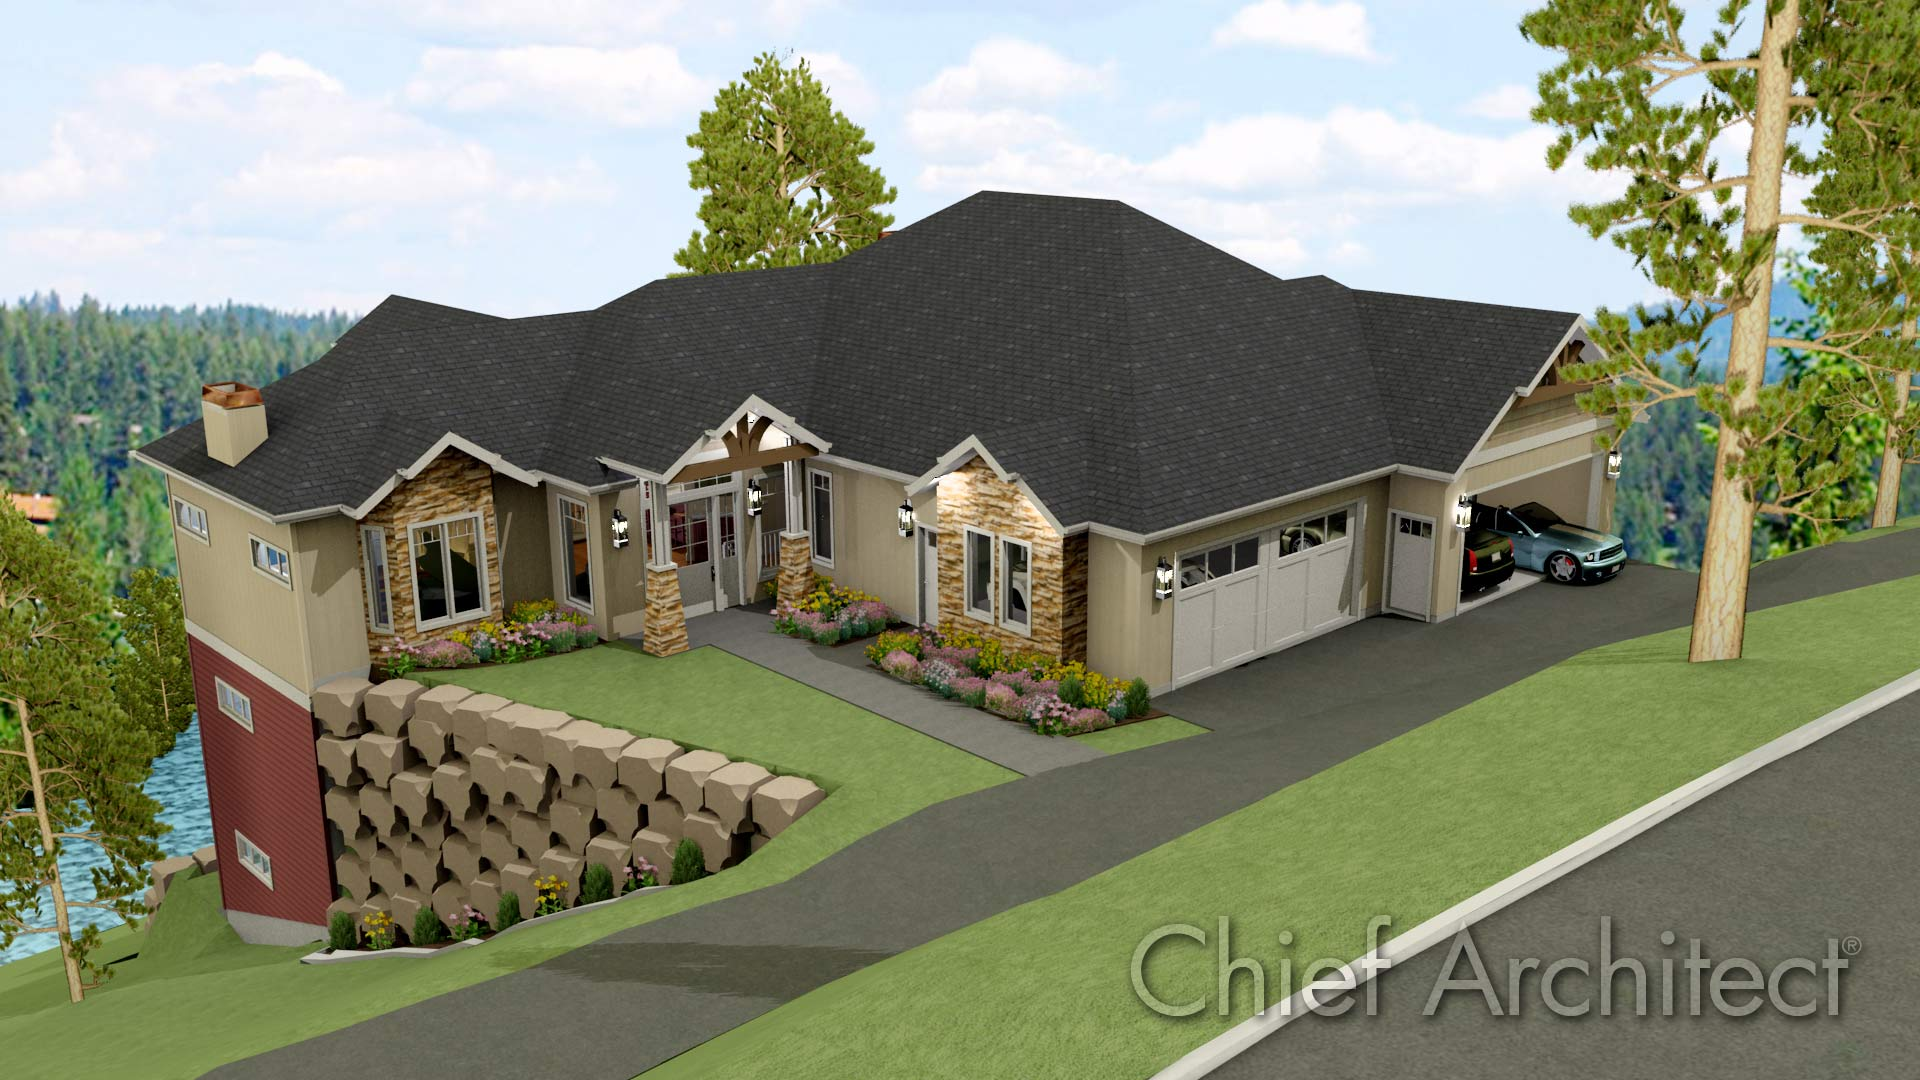 Chief architect home design software sample gallery for Home designer architectural